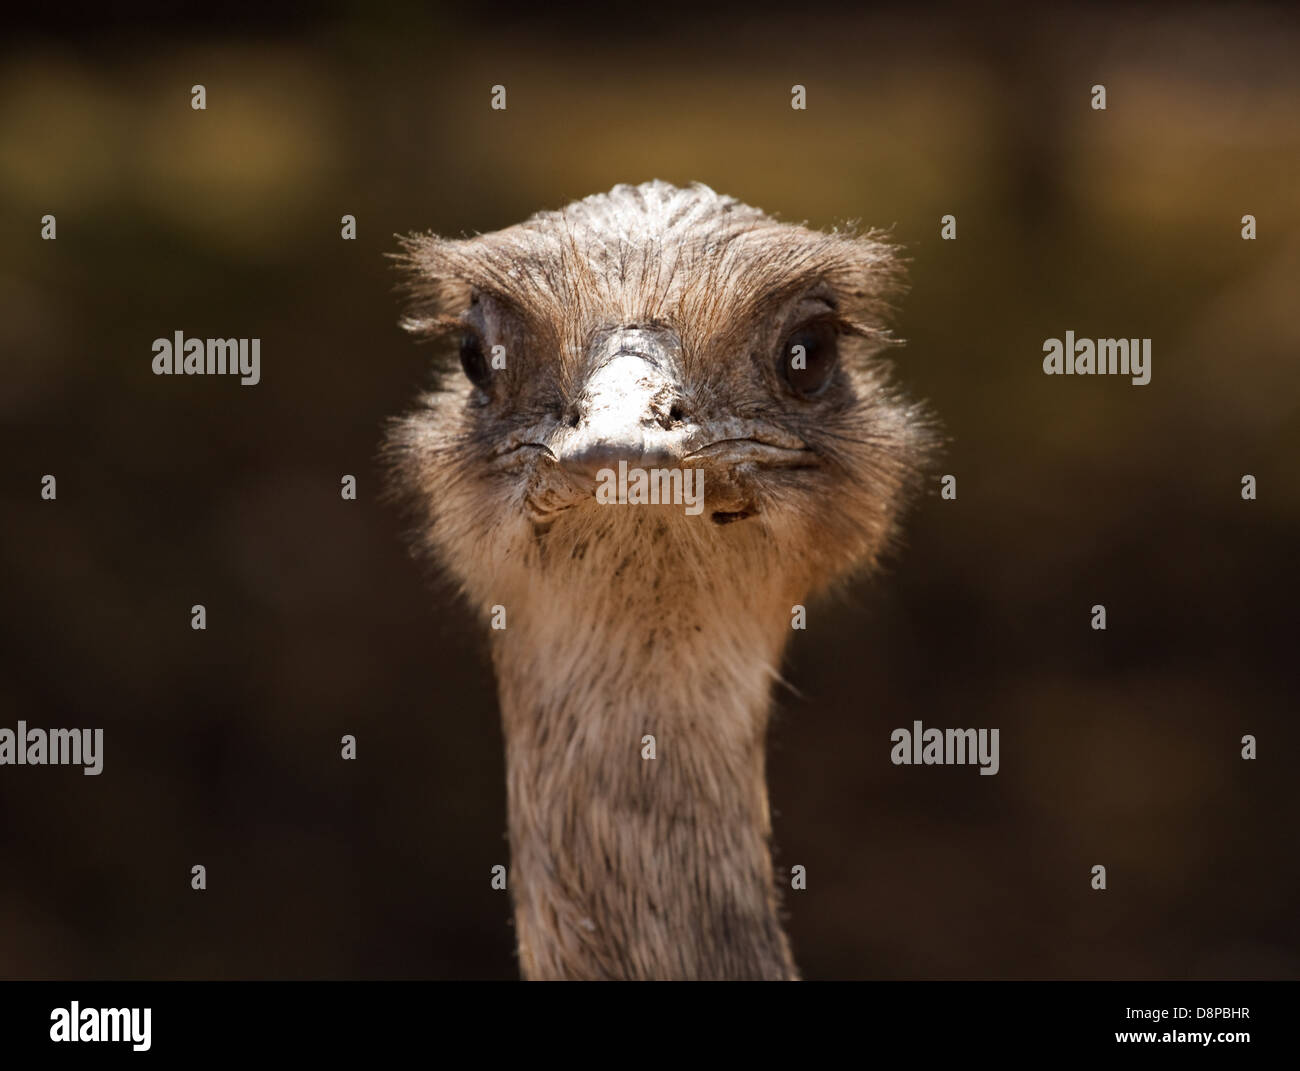 Close up shot of ostrich head looking forward for visitor centres or the concept of denial or burying your head - Stock Image